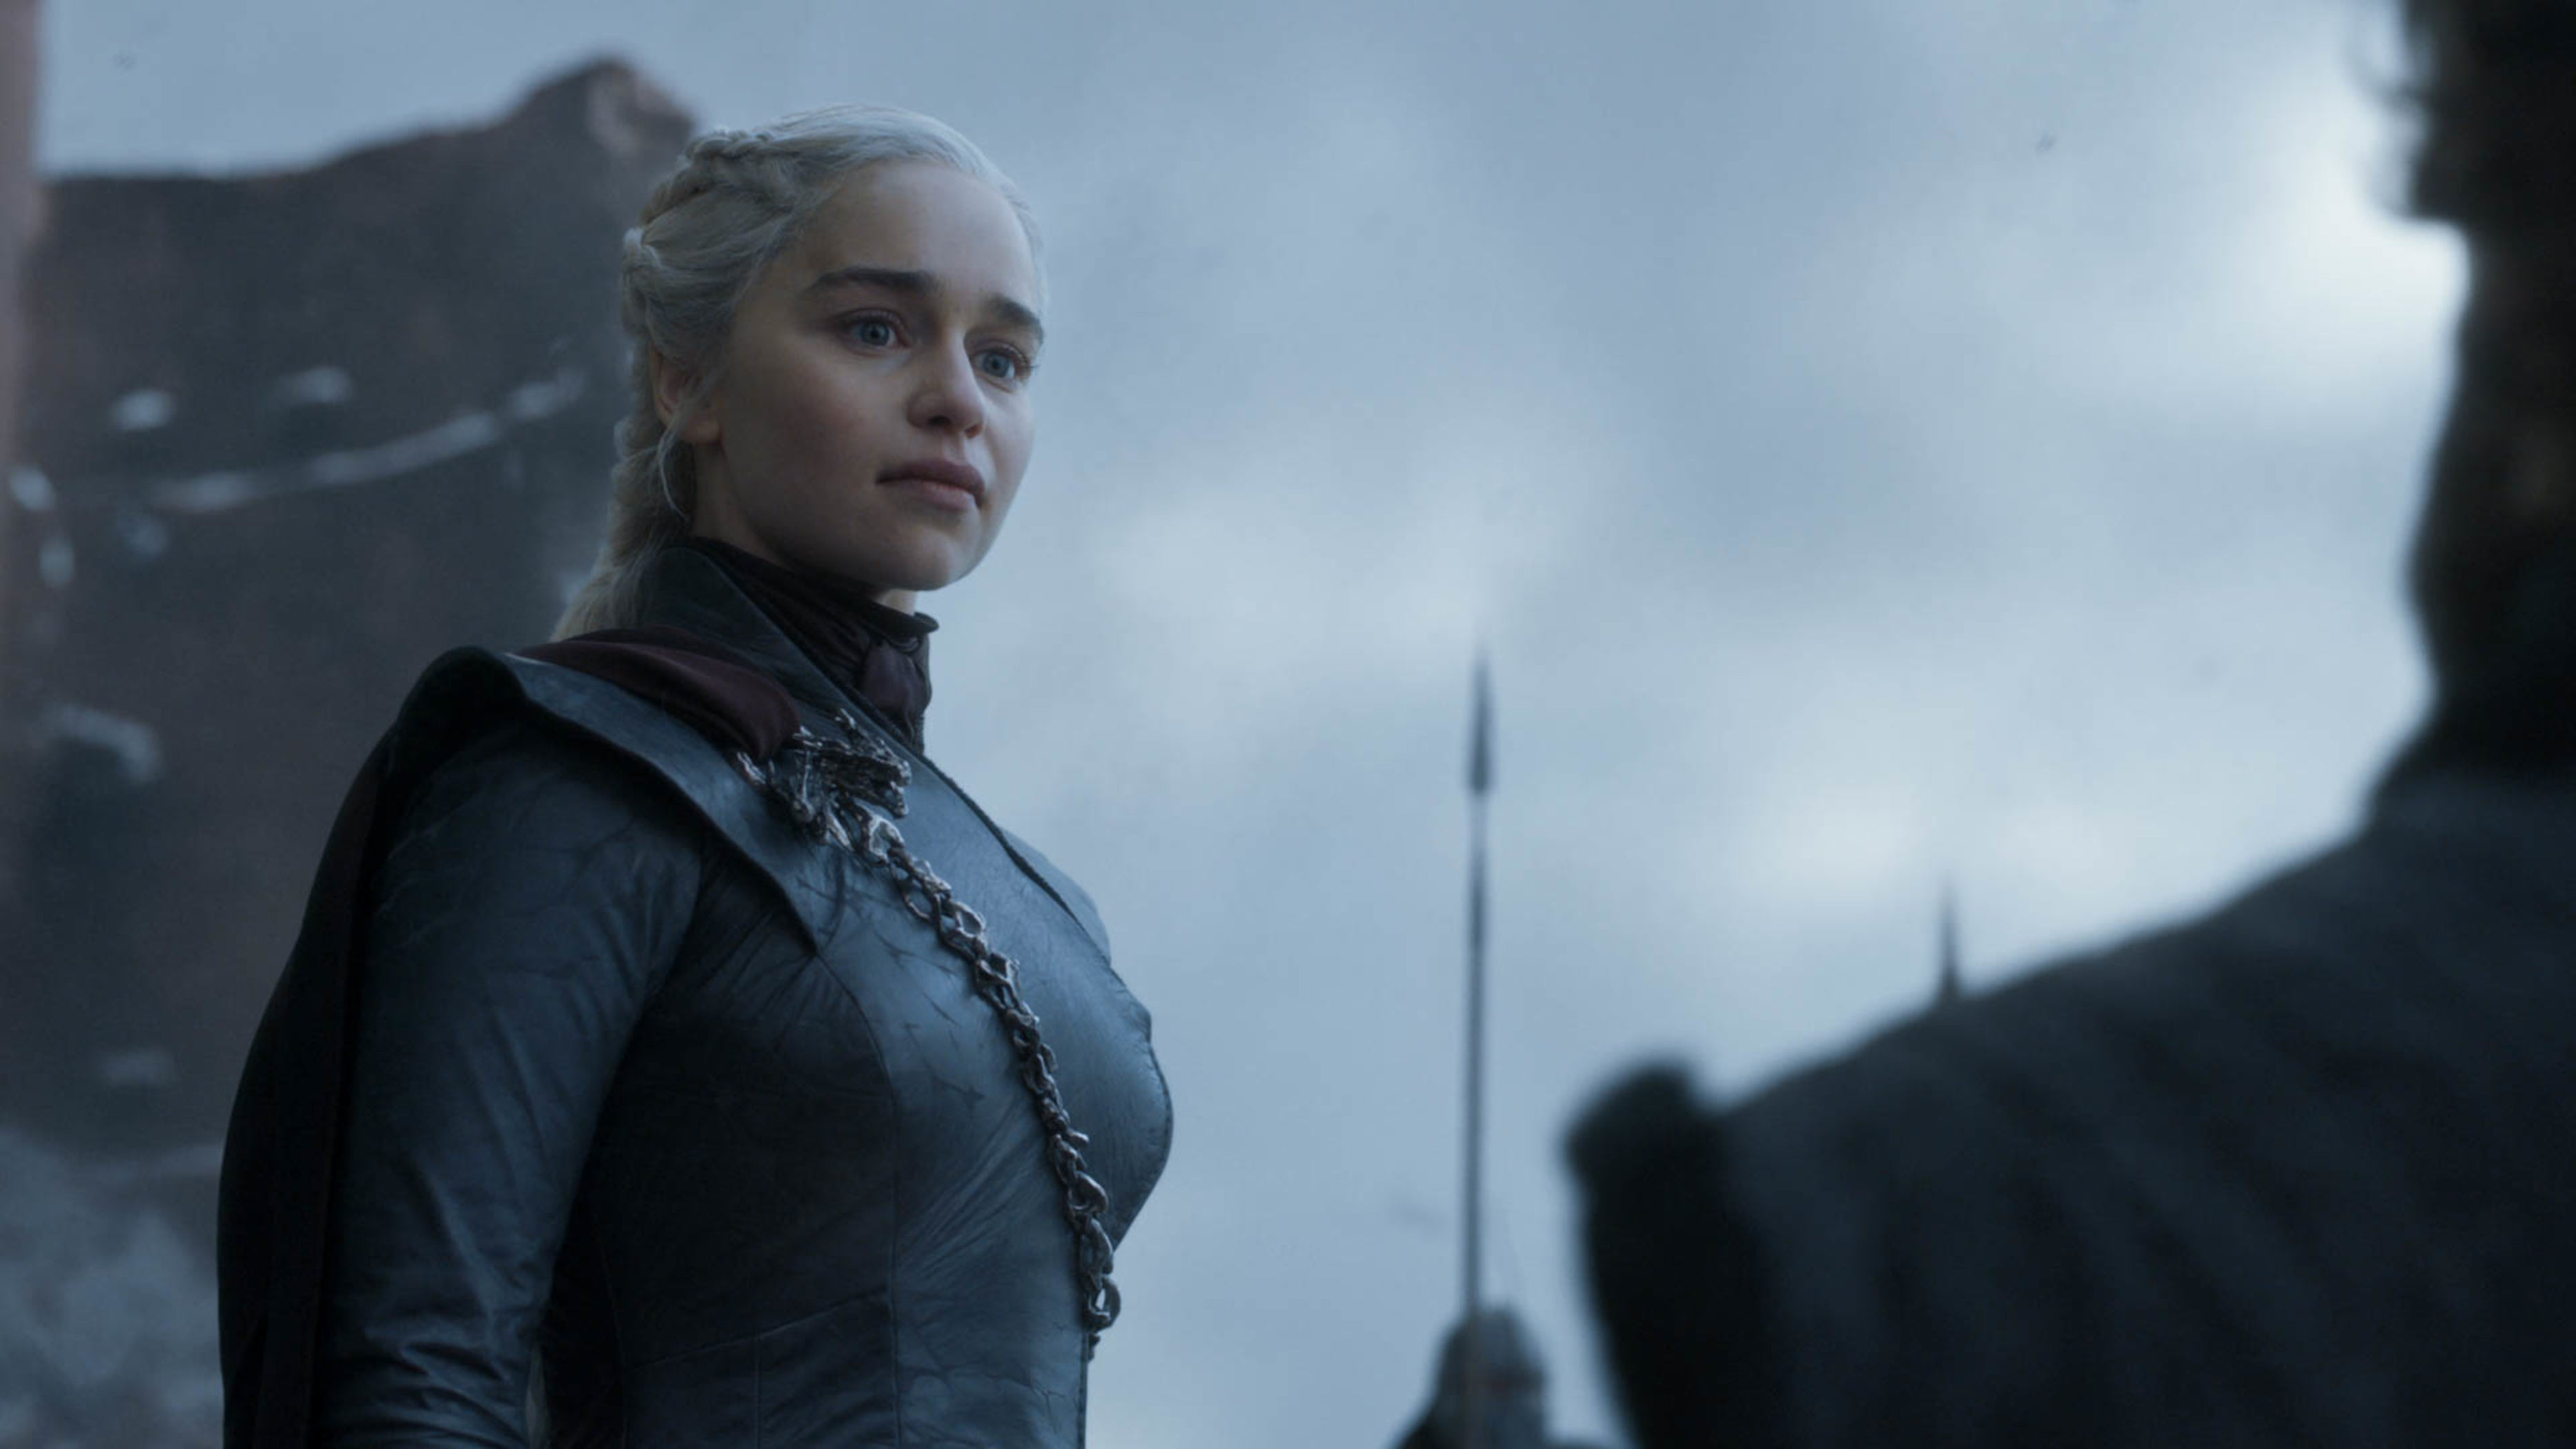 slate.com - Ruth GrahamMarissa Martinelli - What It's Like to Watch the Game of Thrones Finale If You've Never Seen Another Episode